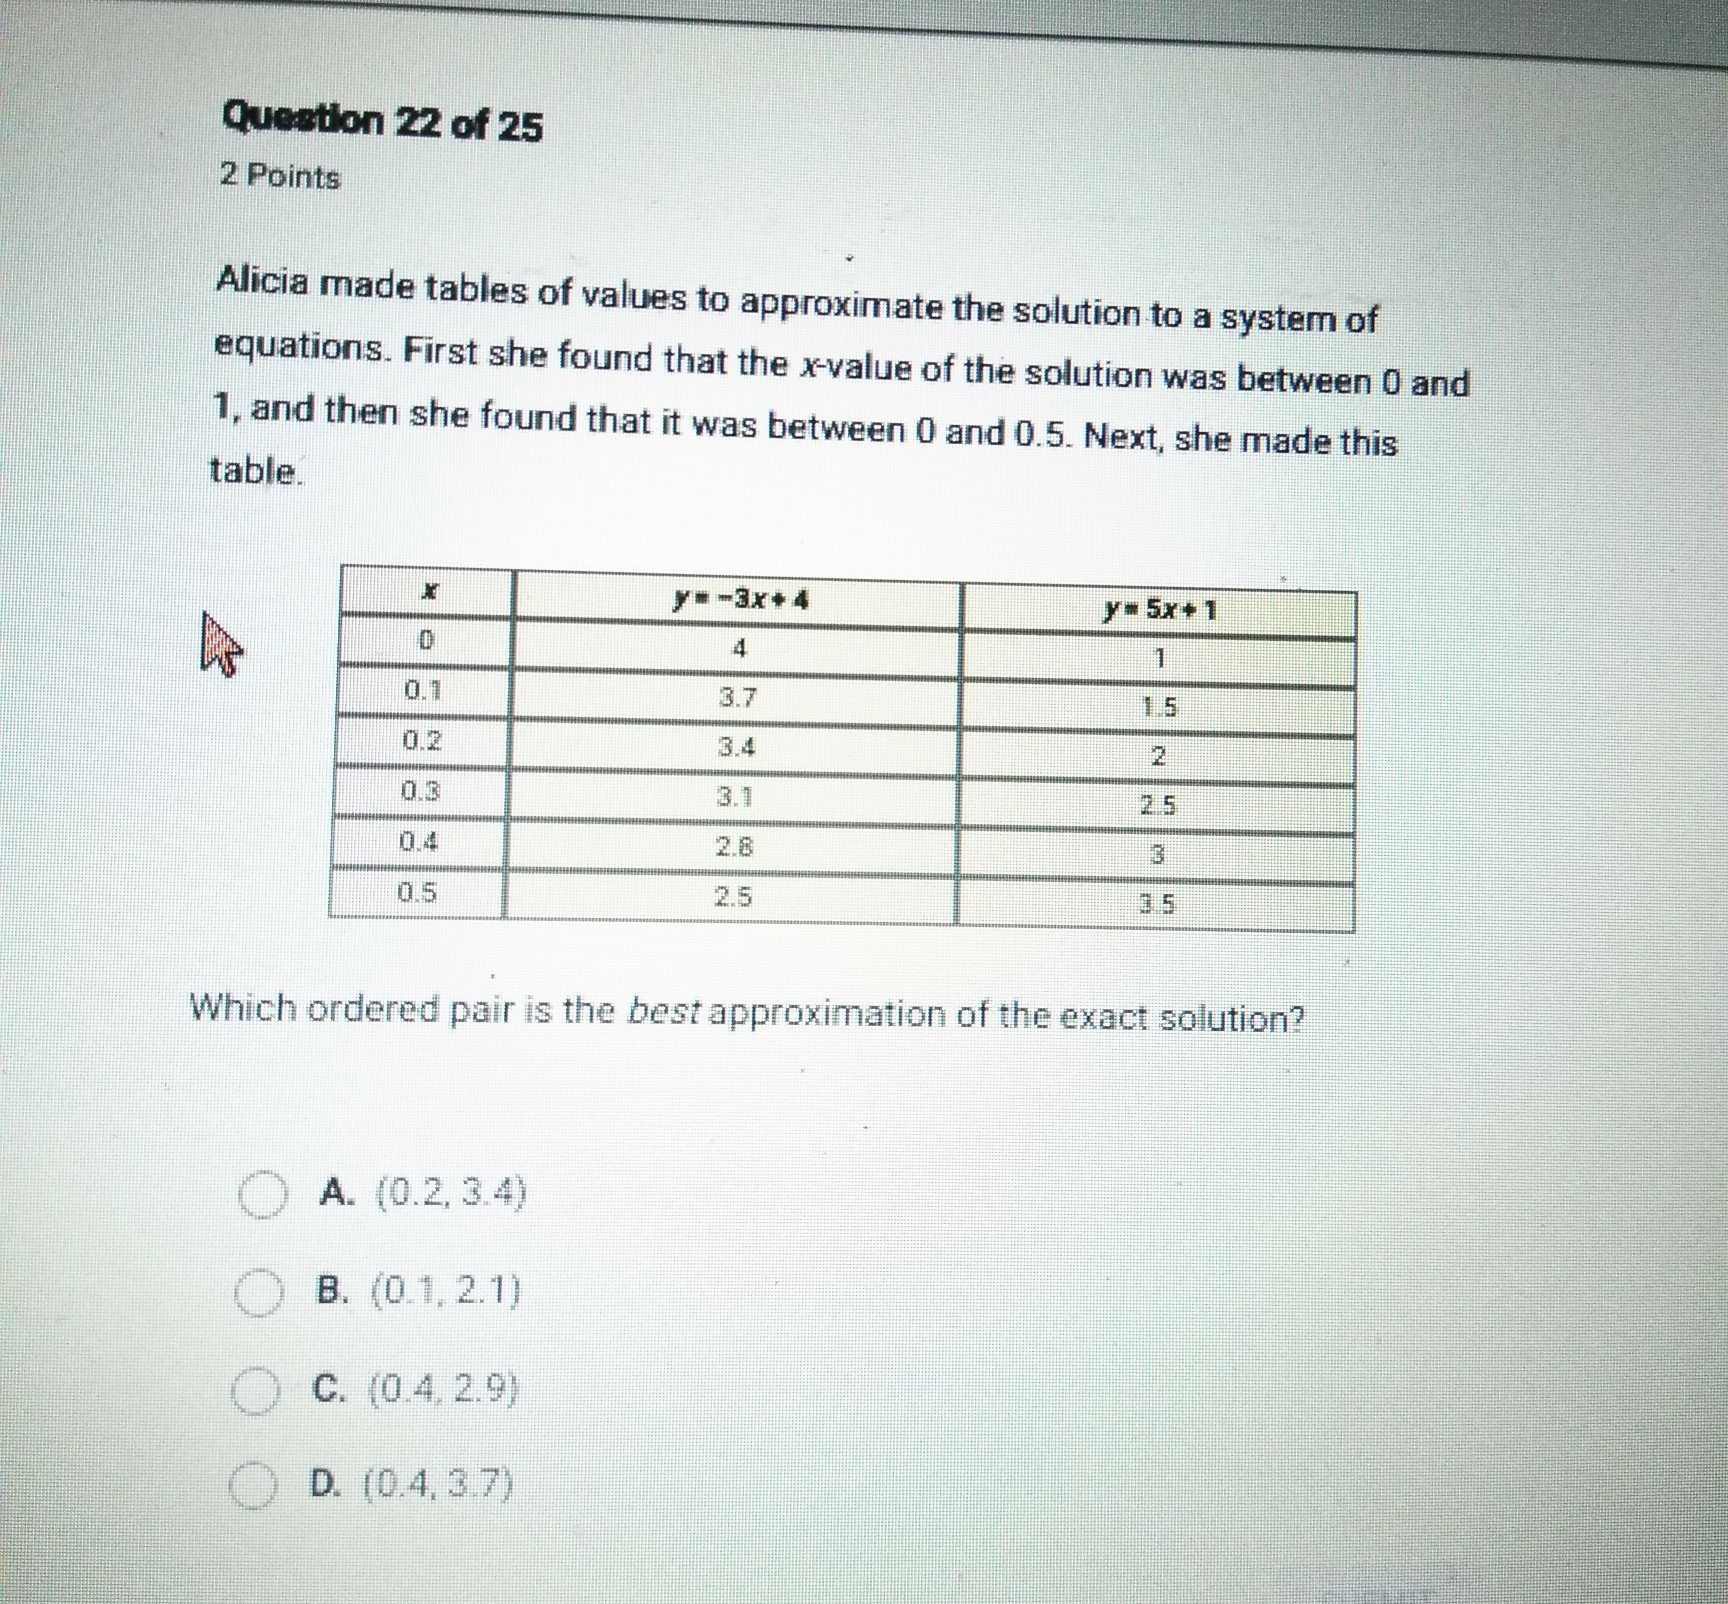 Please Help 20 Points Alicia Made Tables Of Values To